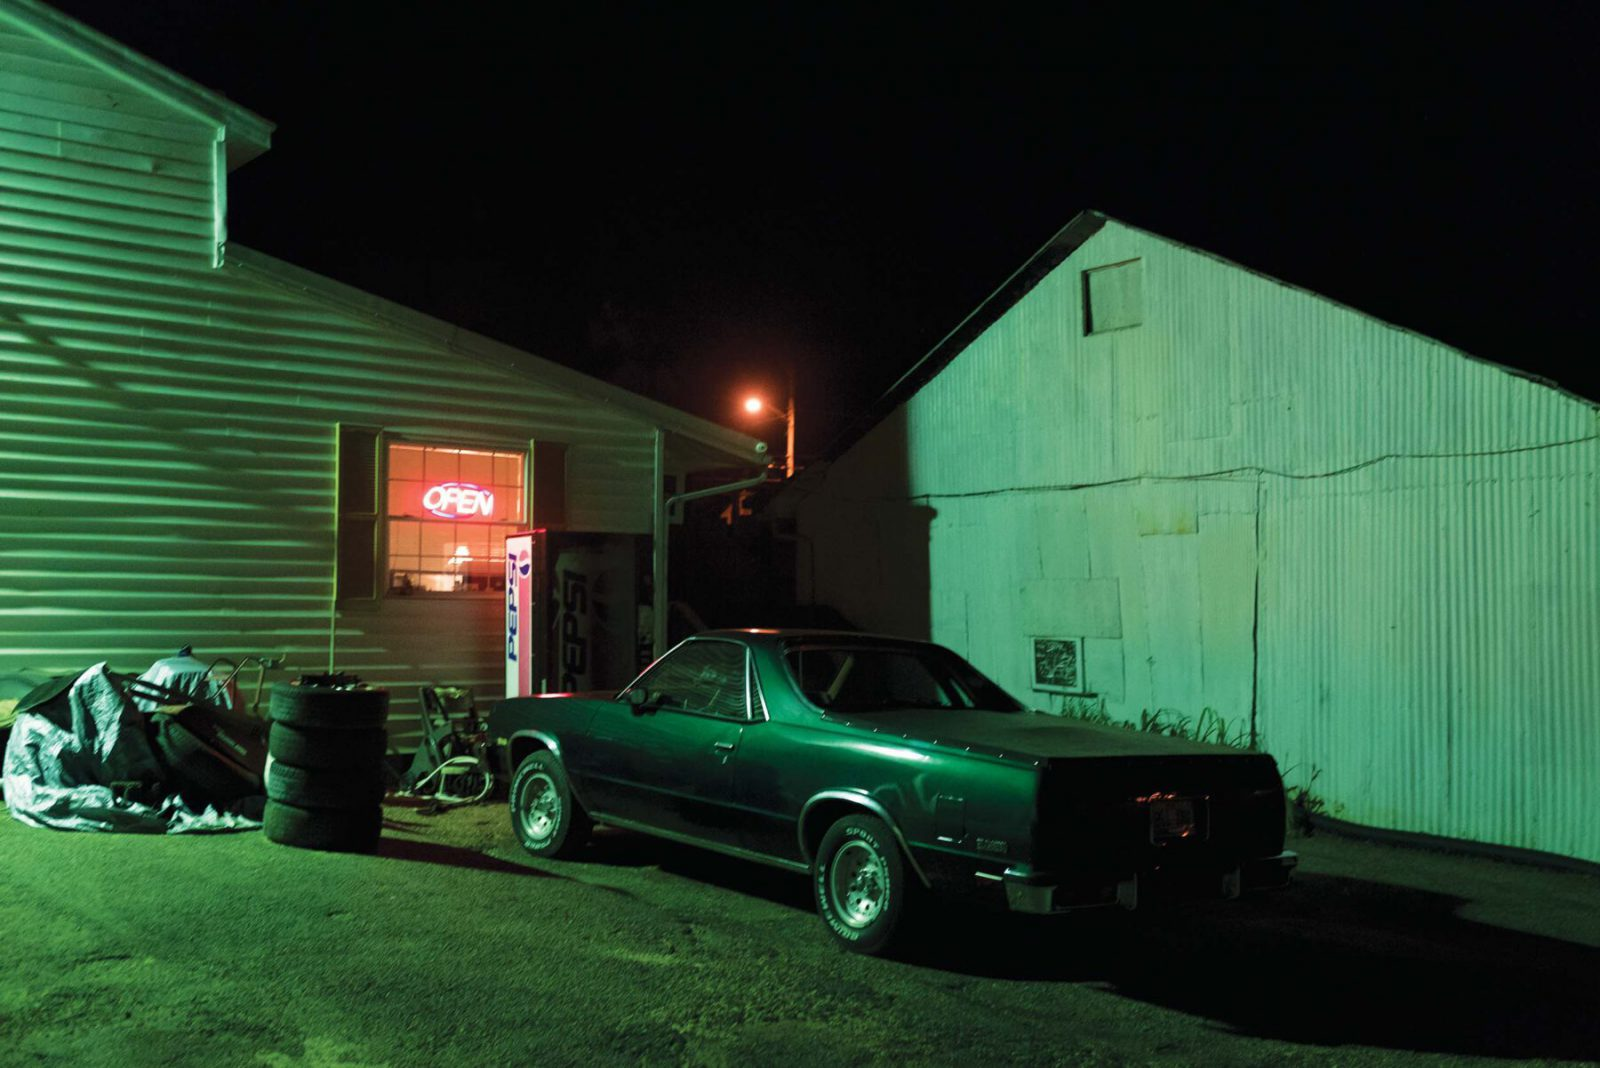 Postindustrial, Where tobacco is king. Photos by Michael Swensen